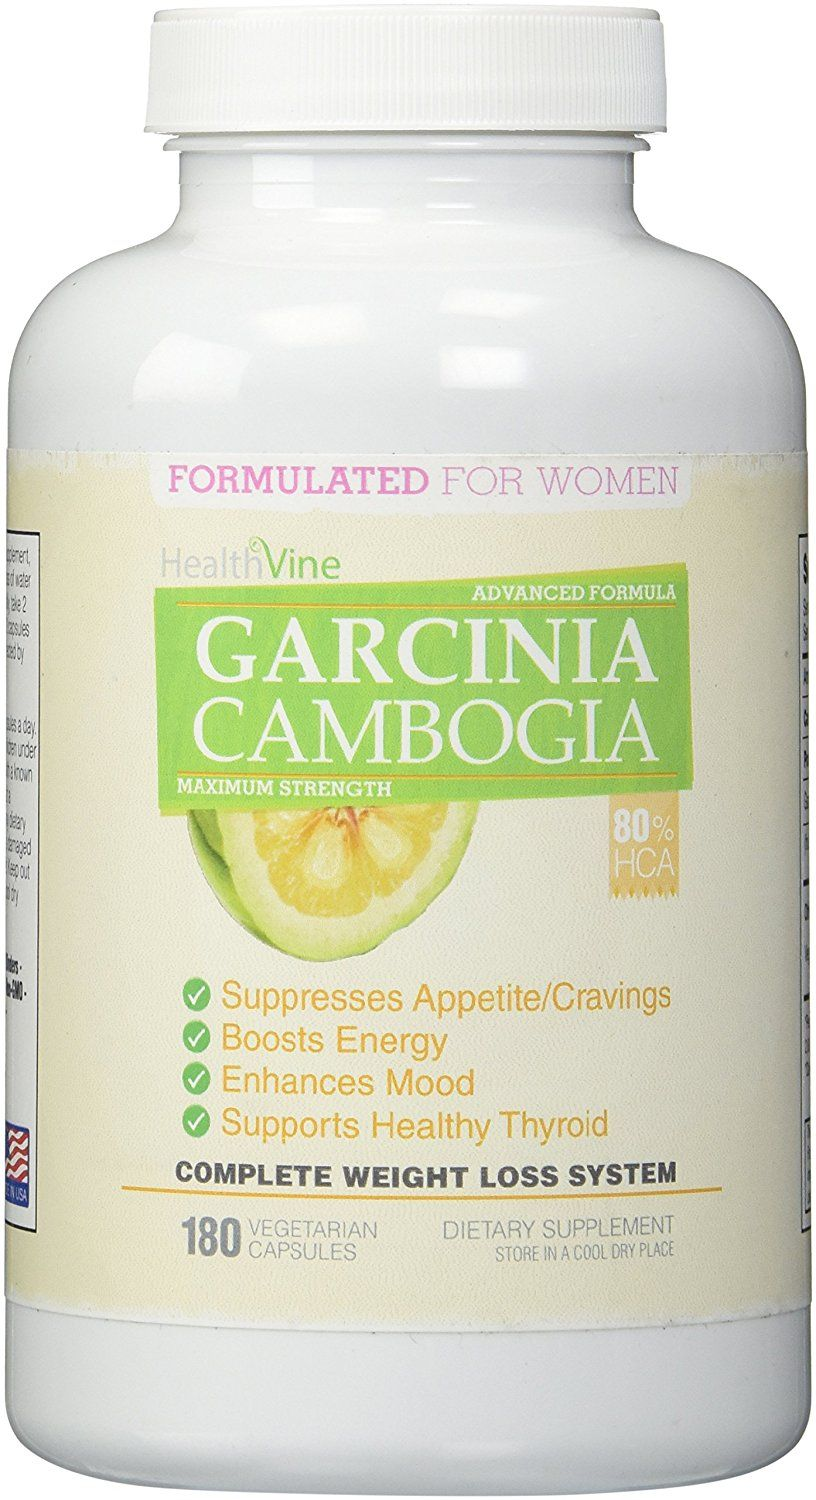 80% HCA MAXIMUM STRENGTH PURE GARCINIA CAMBOGIA EXTRACT FOR WOMEN - 180 vegetarian capsules (45 day supply) - 3,200mg per day ^^ For more information, visit : Garcinia cambogia